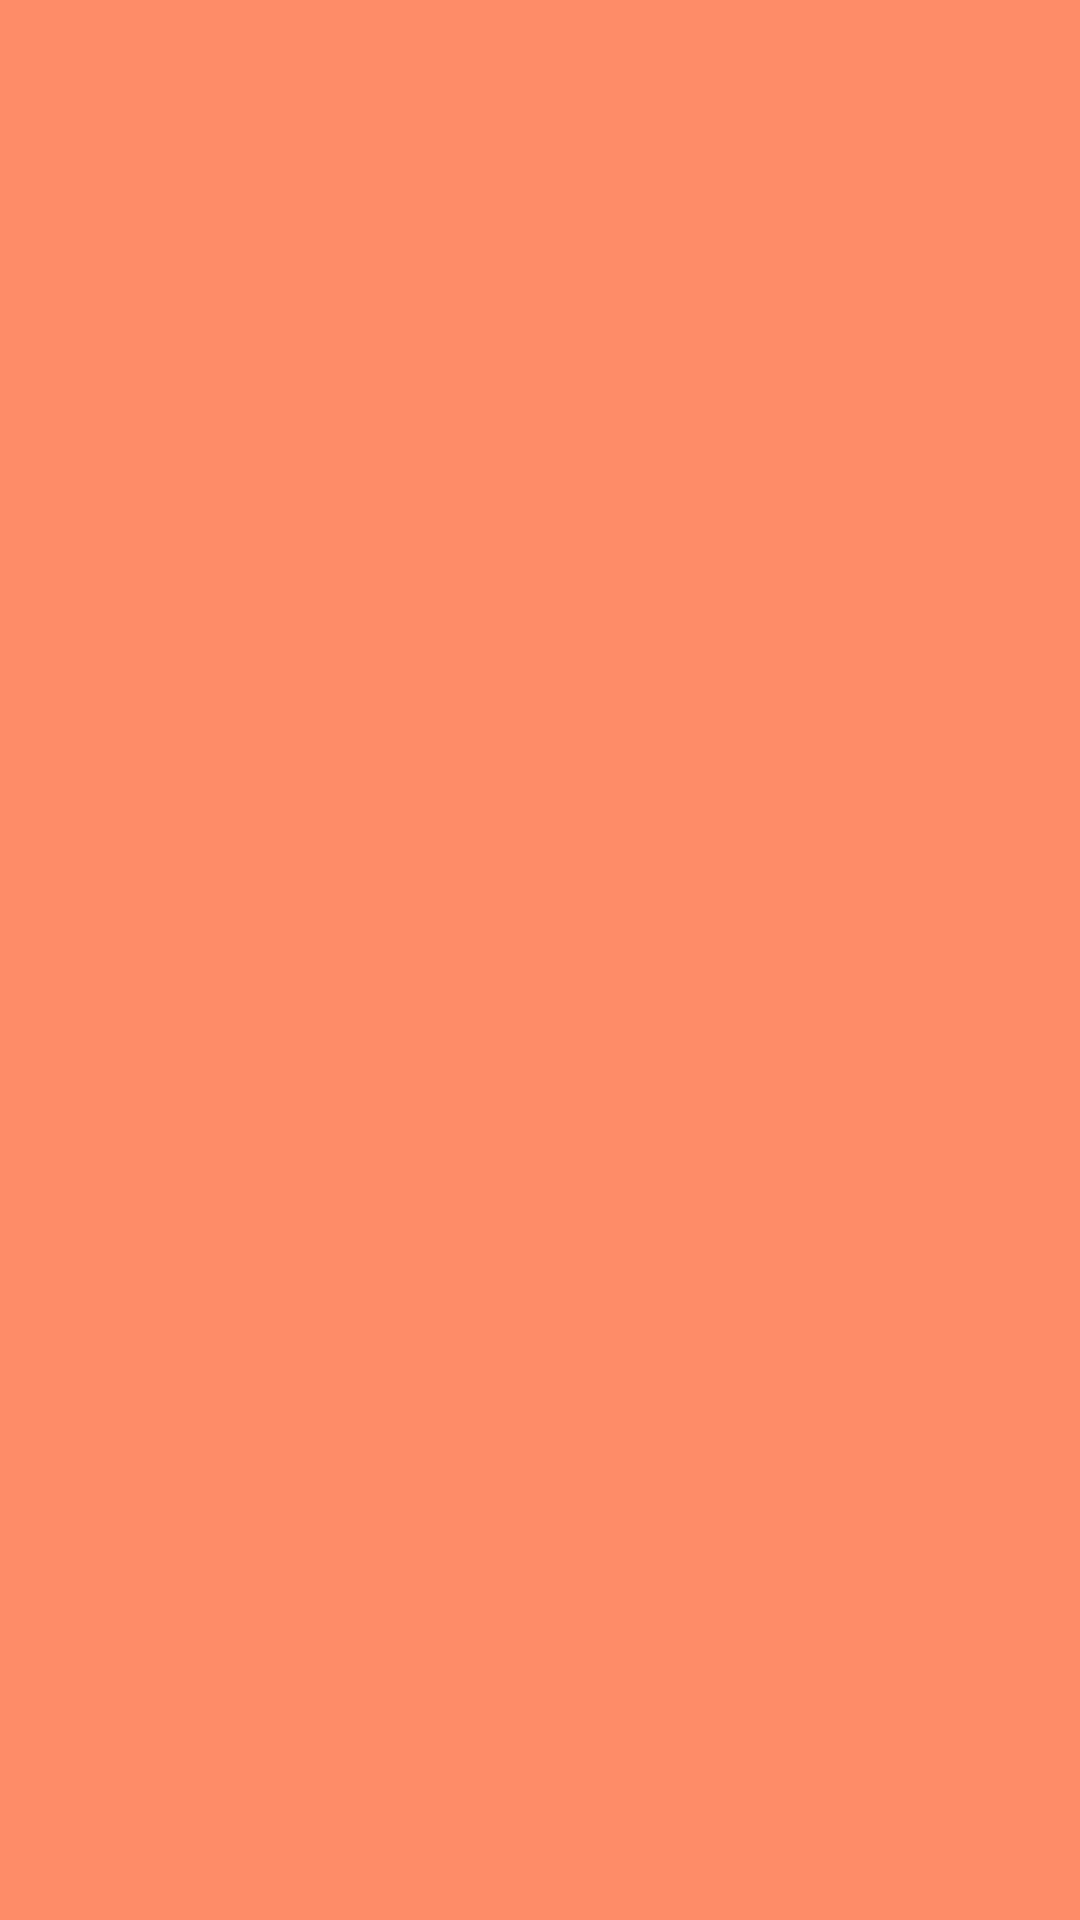 1080x1920 Salmon Solid Color Background